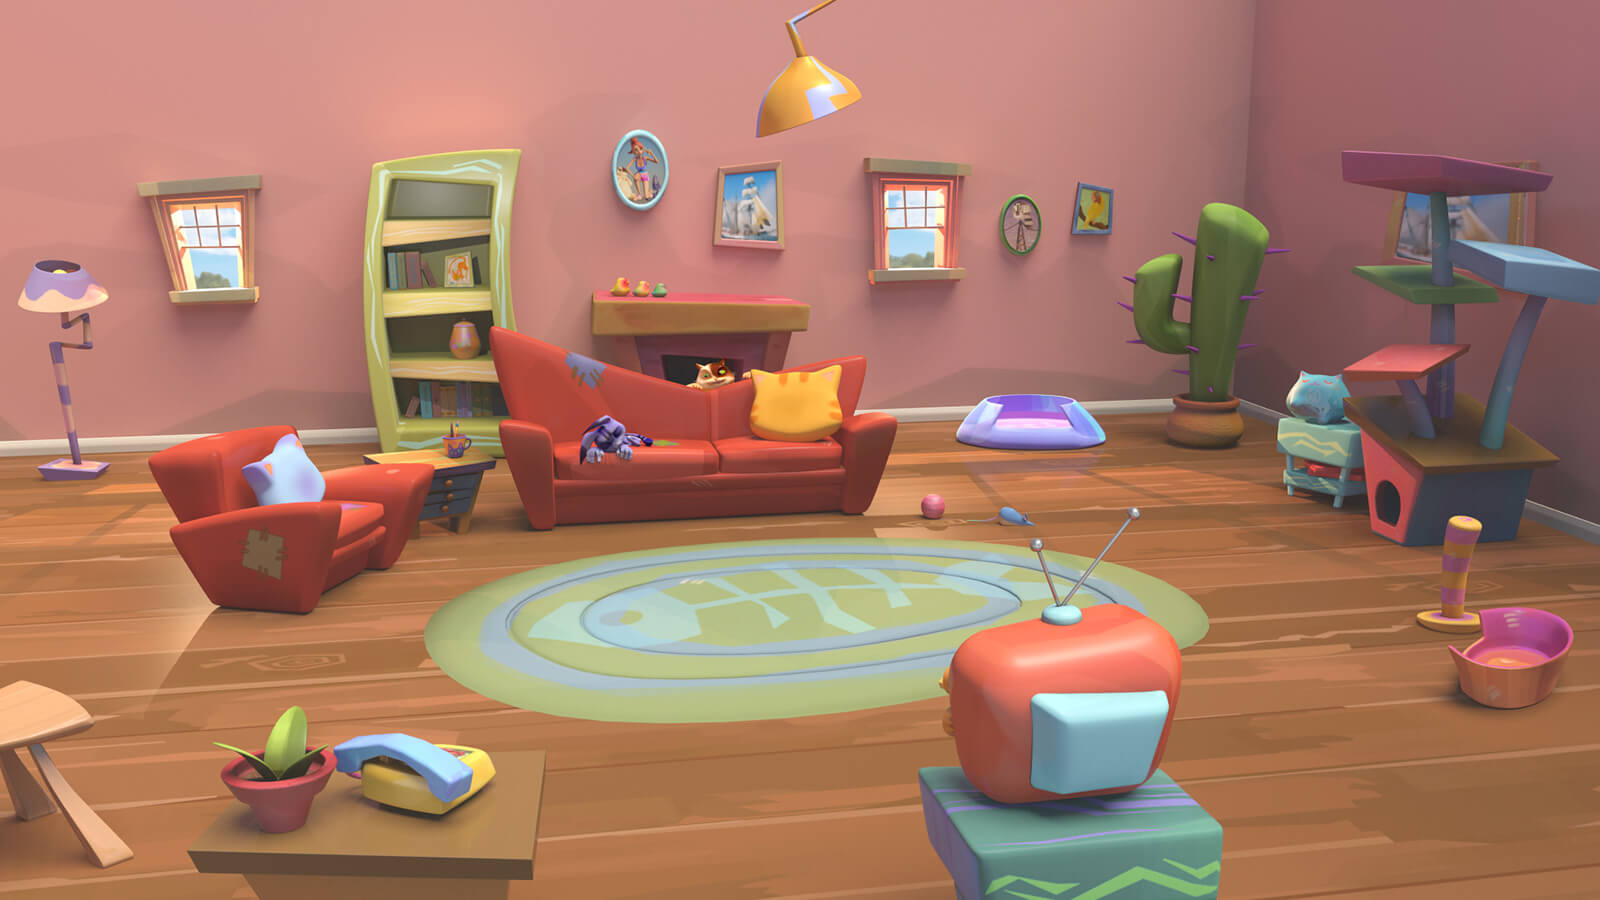 A colorful, stylized CG living room scene, with couches, shelves, a rug, television set, and cat furniture